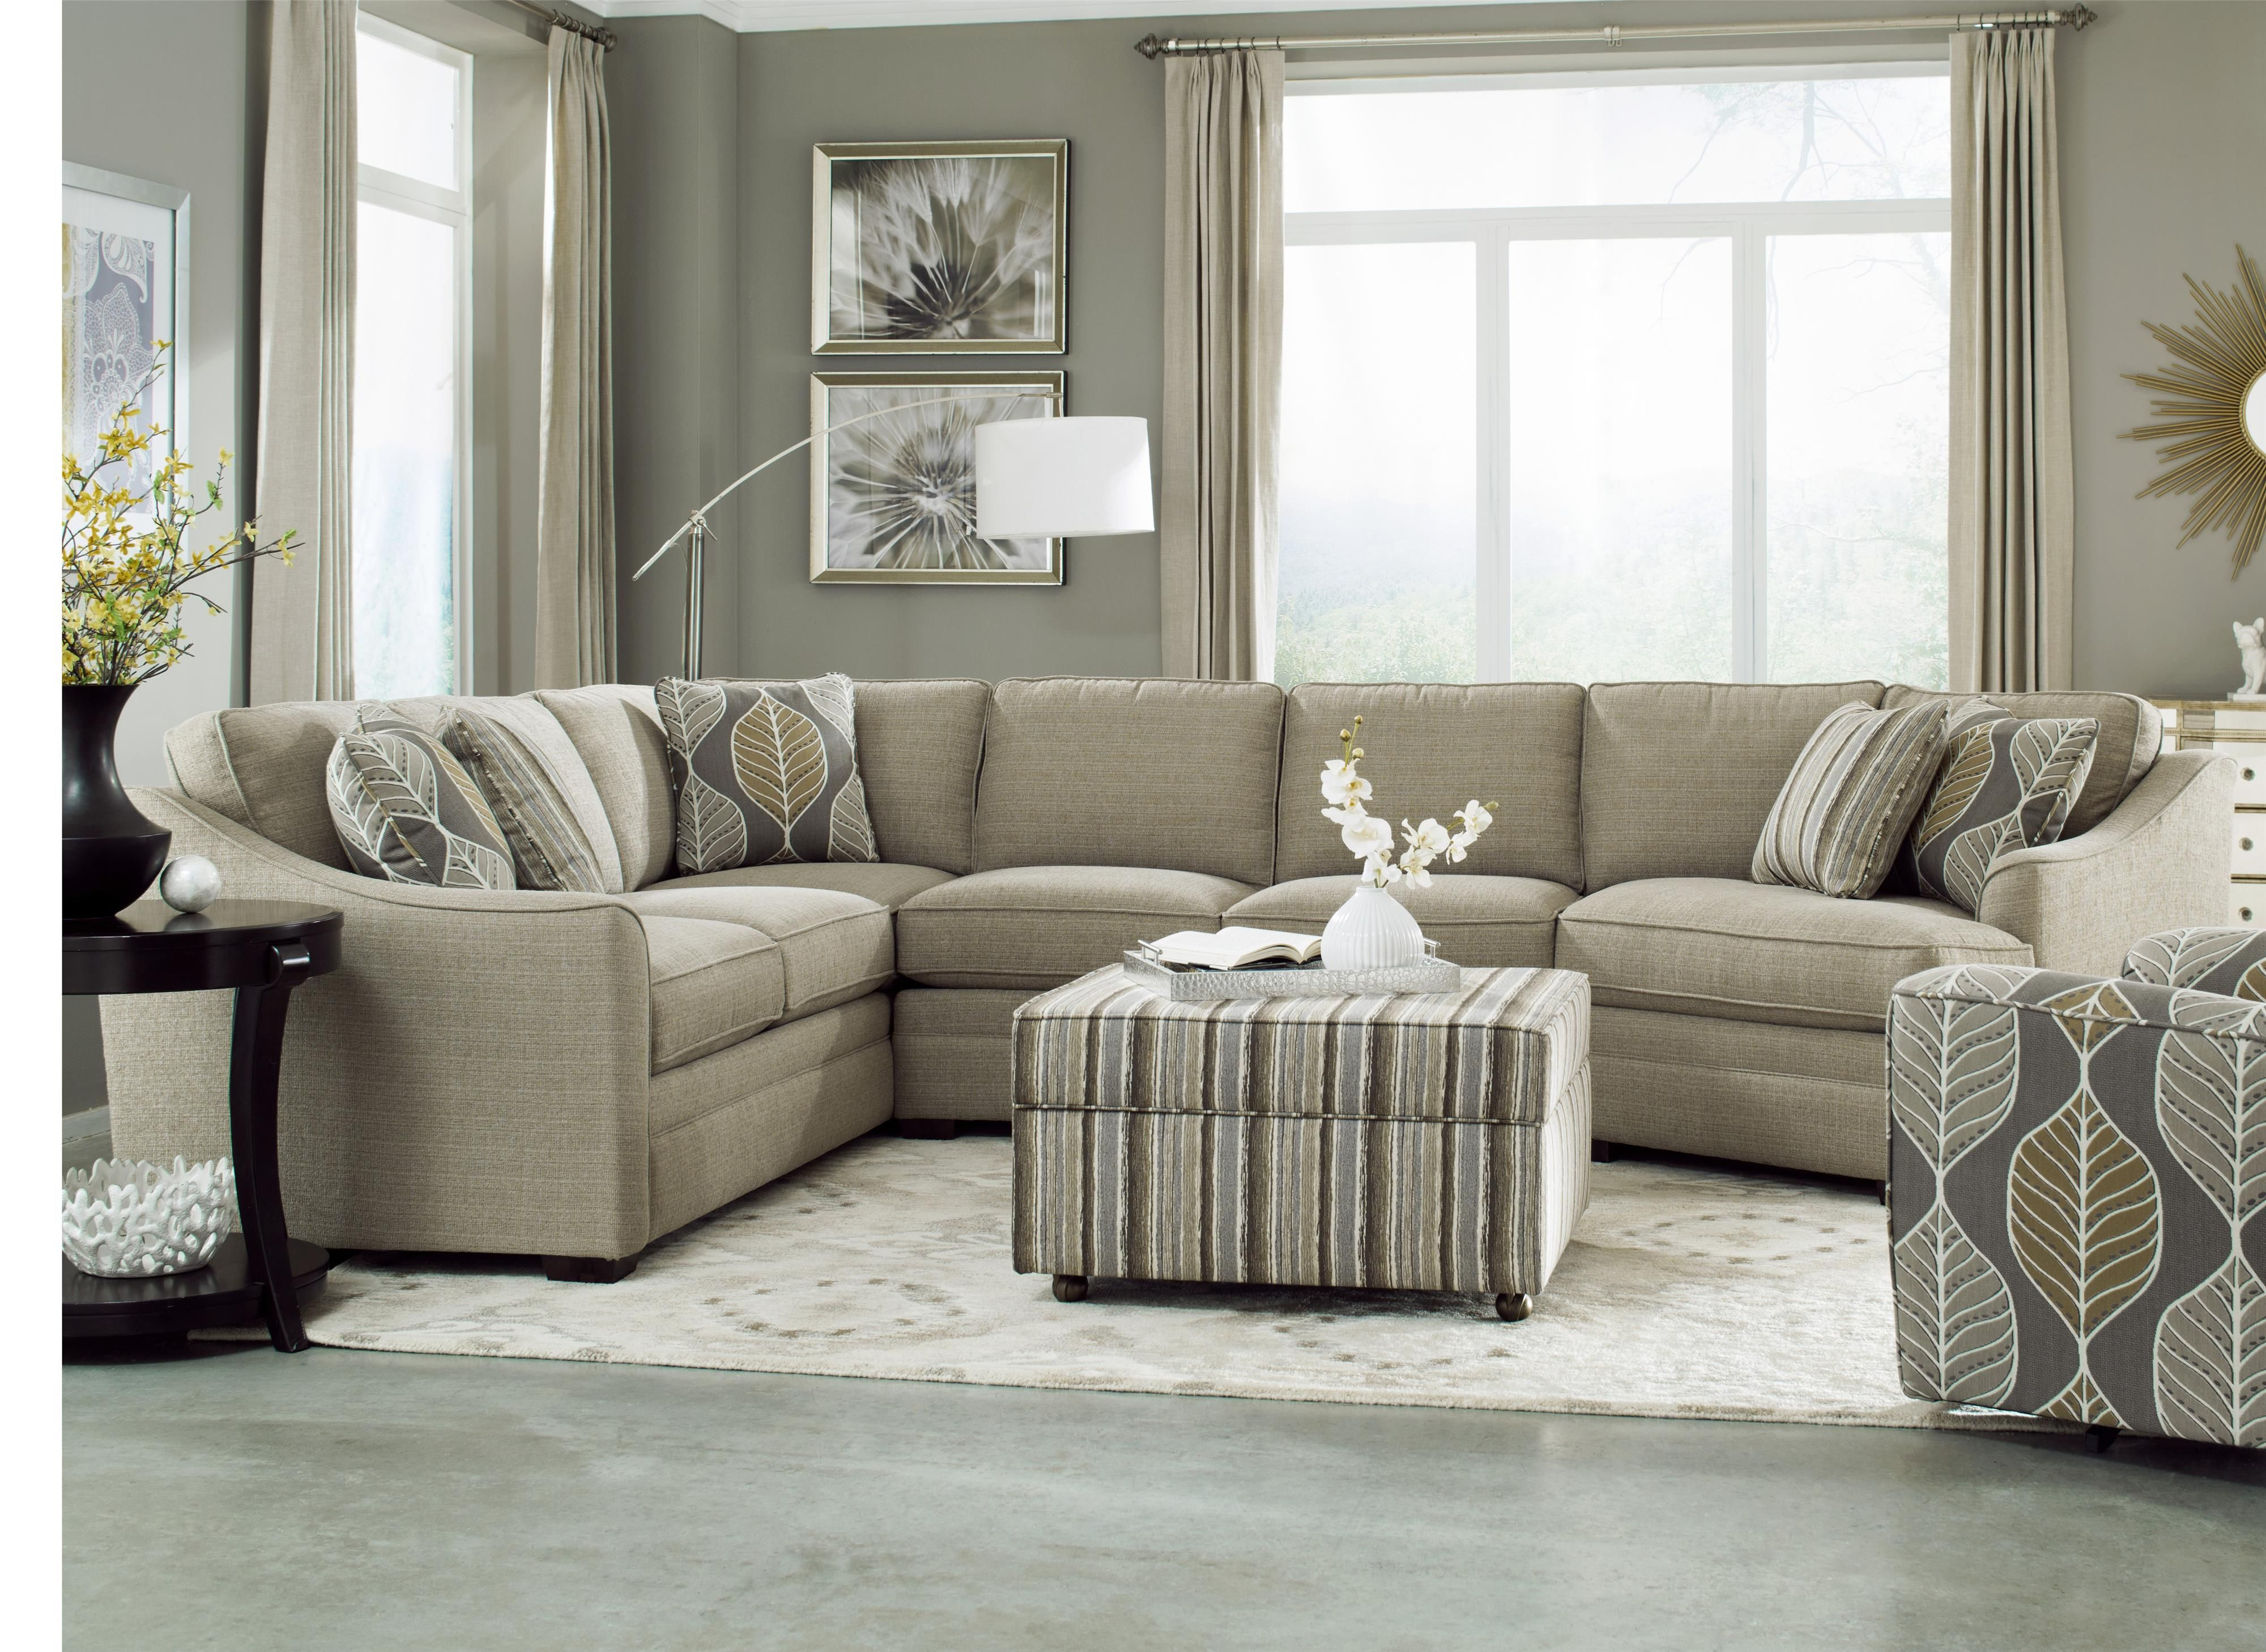 F9 Custom Collection b Custom b 3 Piece Sectional by